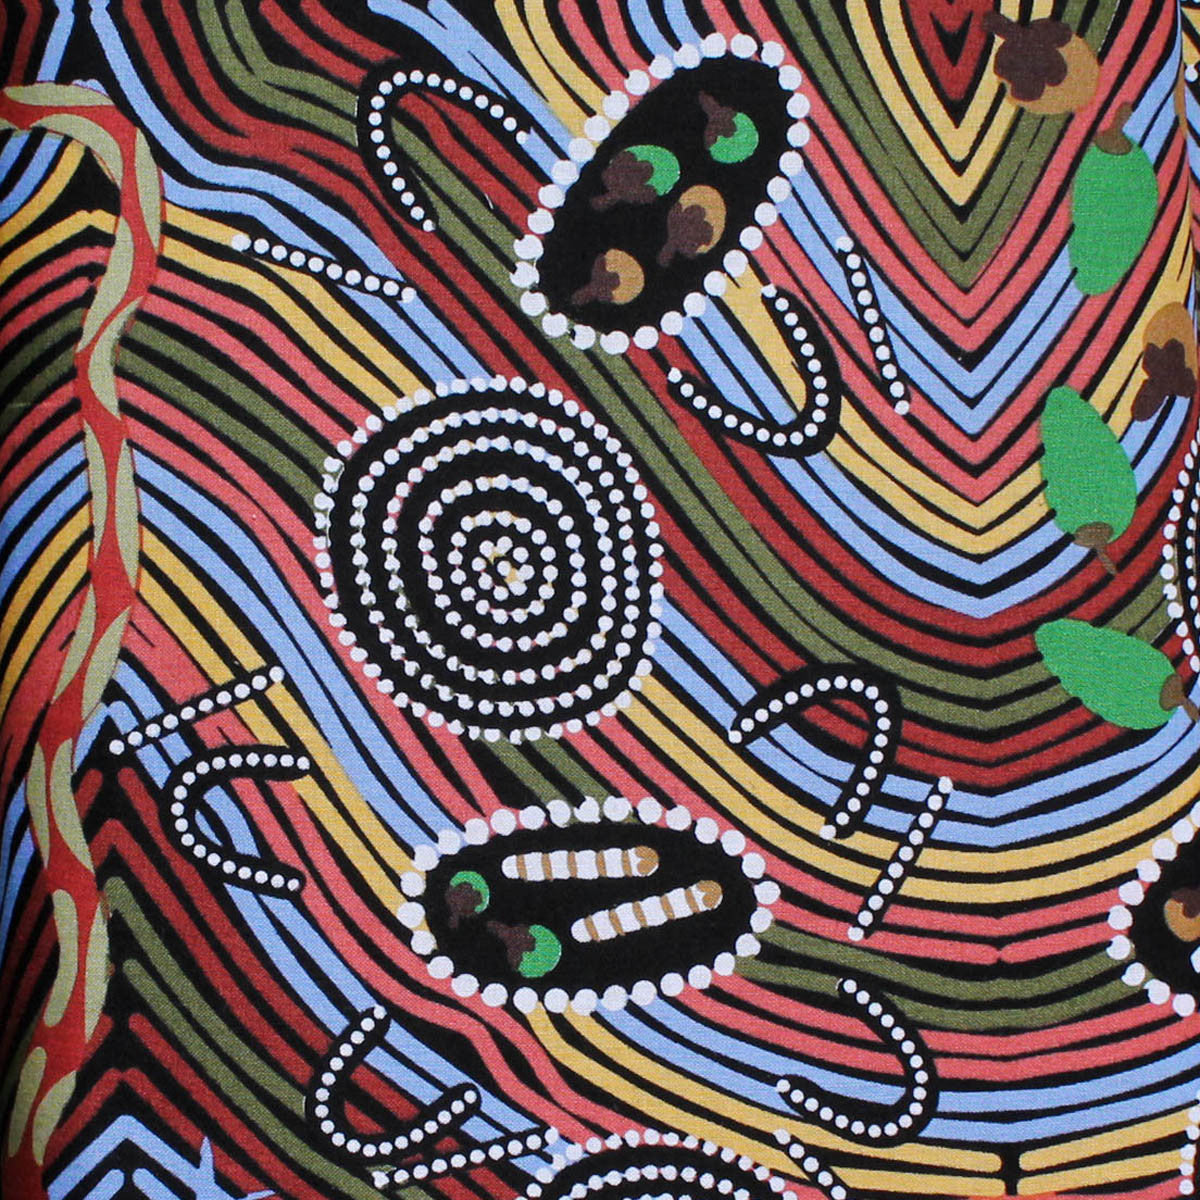 RAINBOW SNAKE by Aboriginal Artist PEGGY BROWN